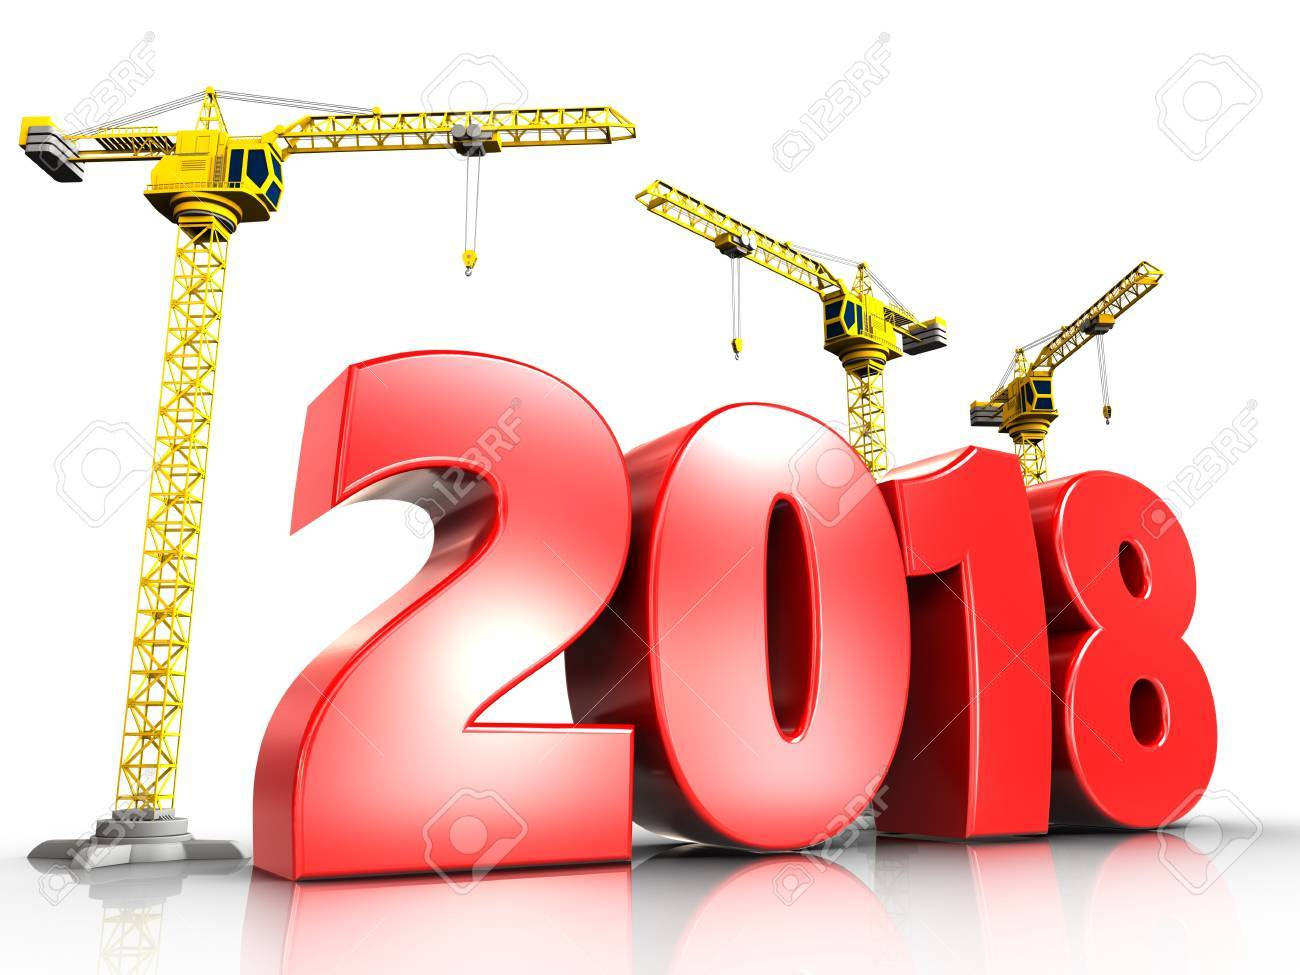 3d illustration of cranes building red 2018 year over white background - 87532431